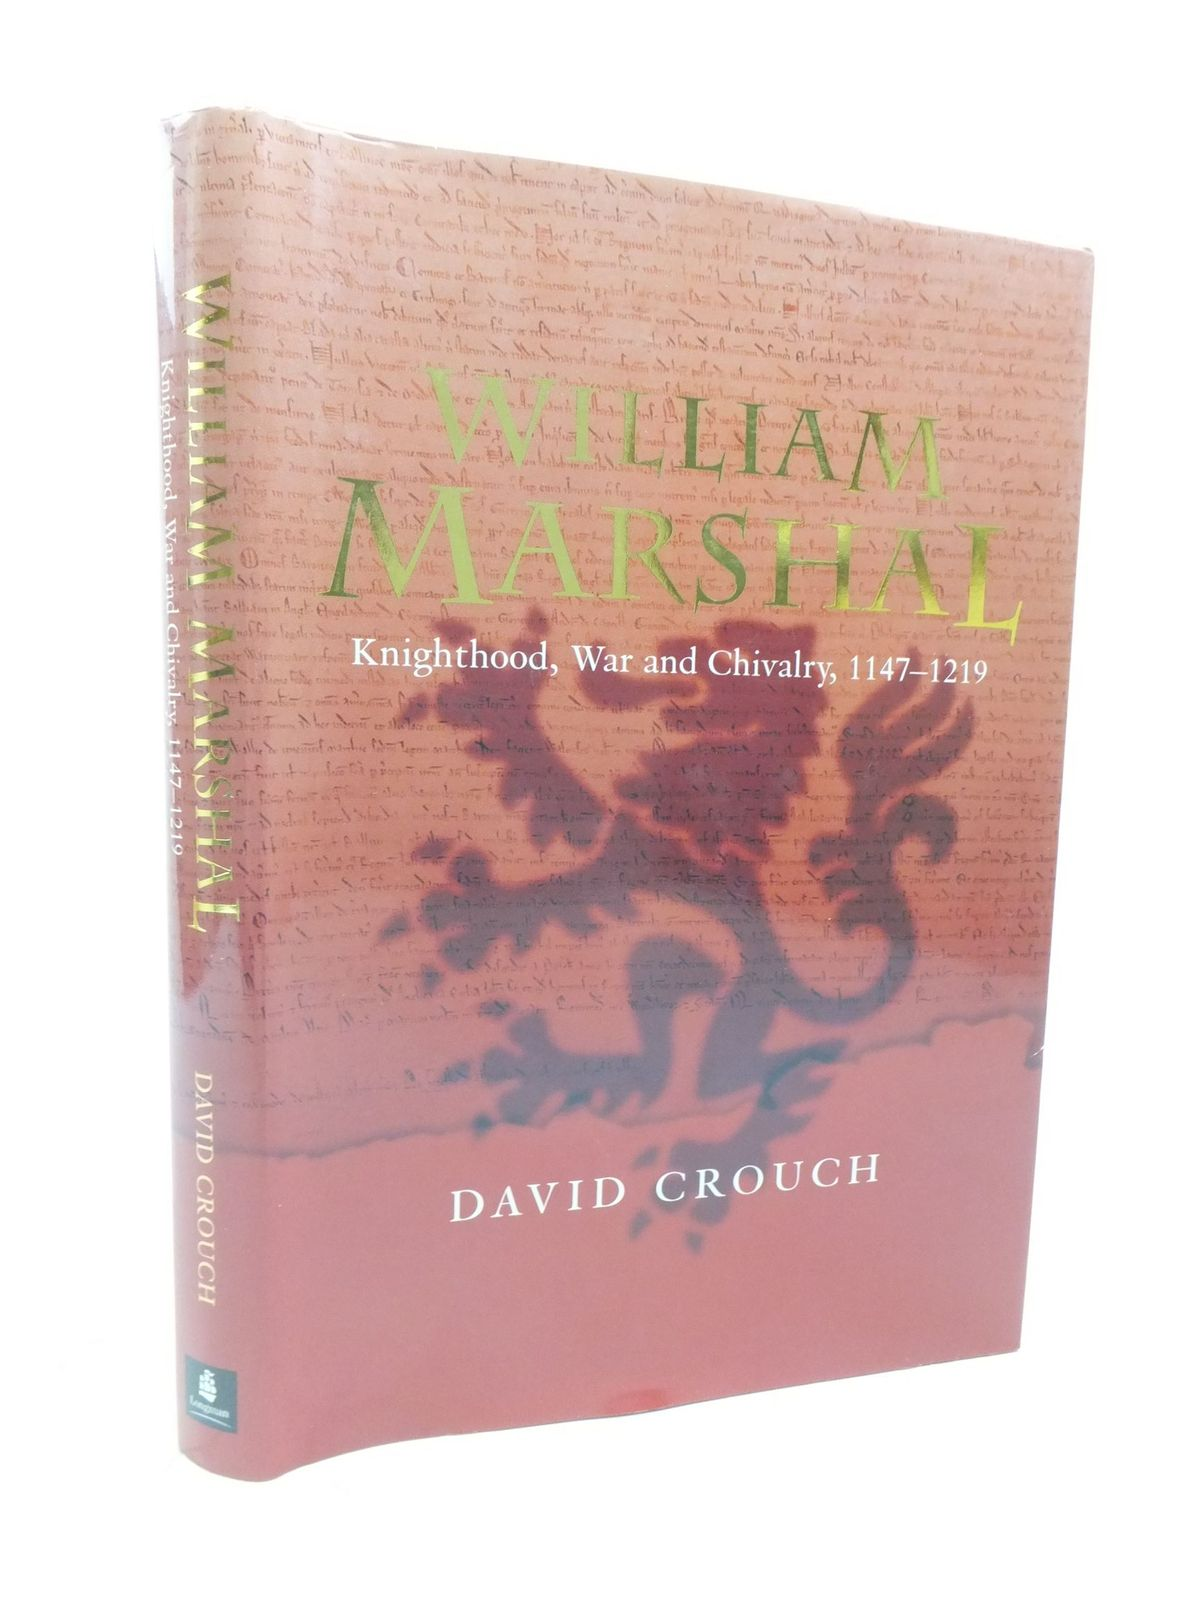 Photo of WILLIAM MARSHAL KNIGHTHOOD, WAR AND CHIVALRY 1147-1219 written by Crouch, David published by Pearson Education (STOCK CODE: 1709575)  for sale by Stella & Rose's Books